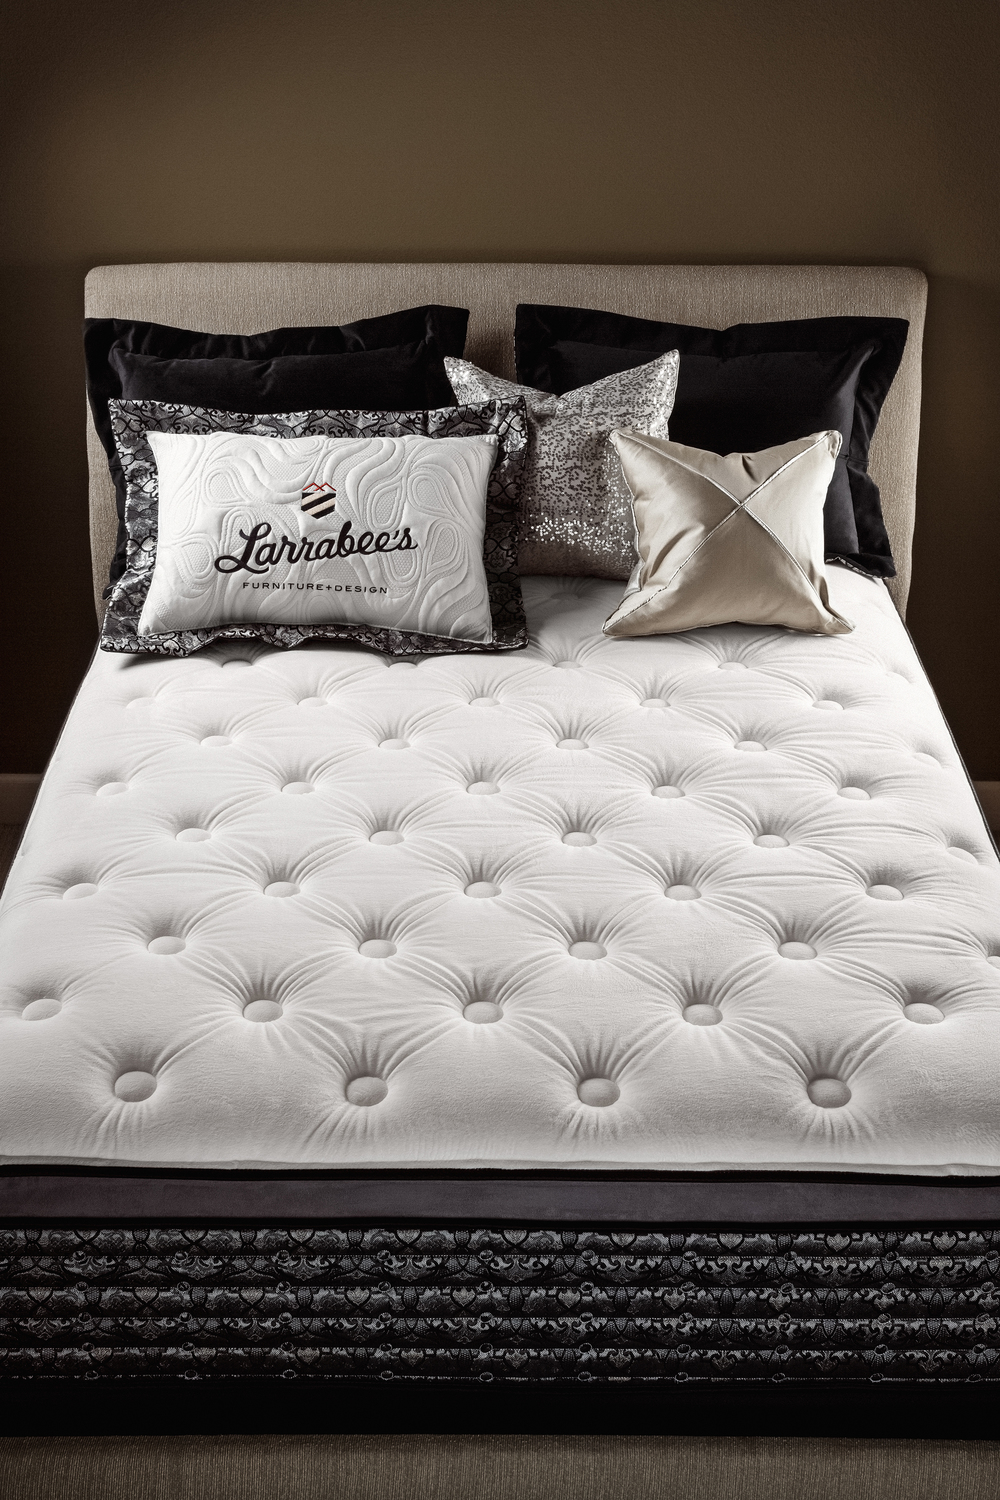 Larrabees_Select_Mattress.jpg